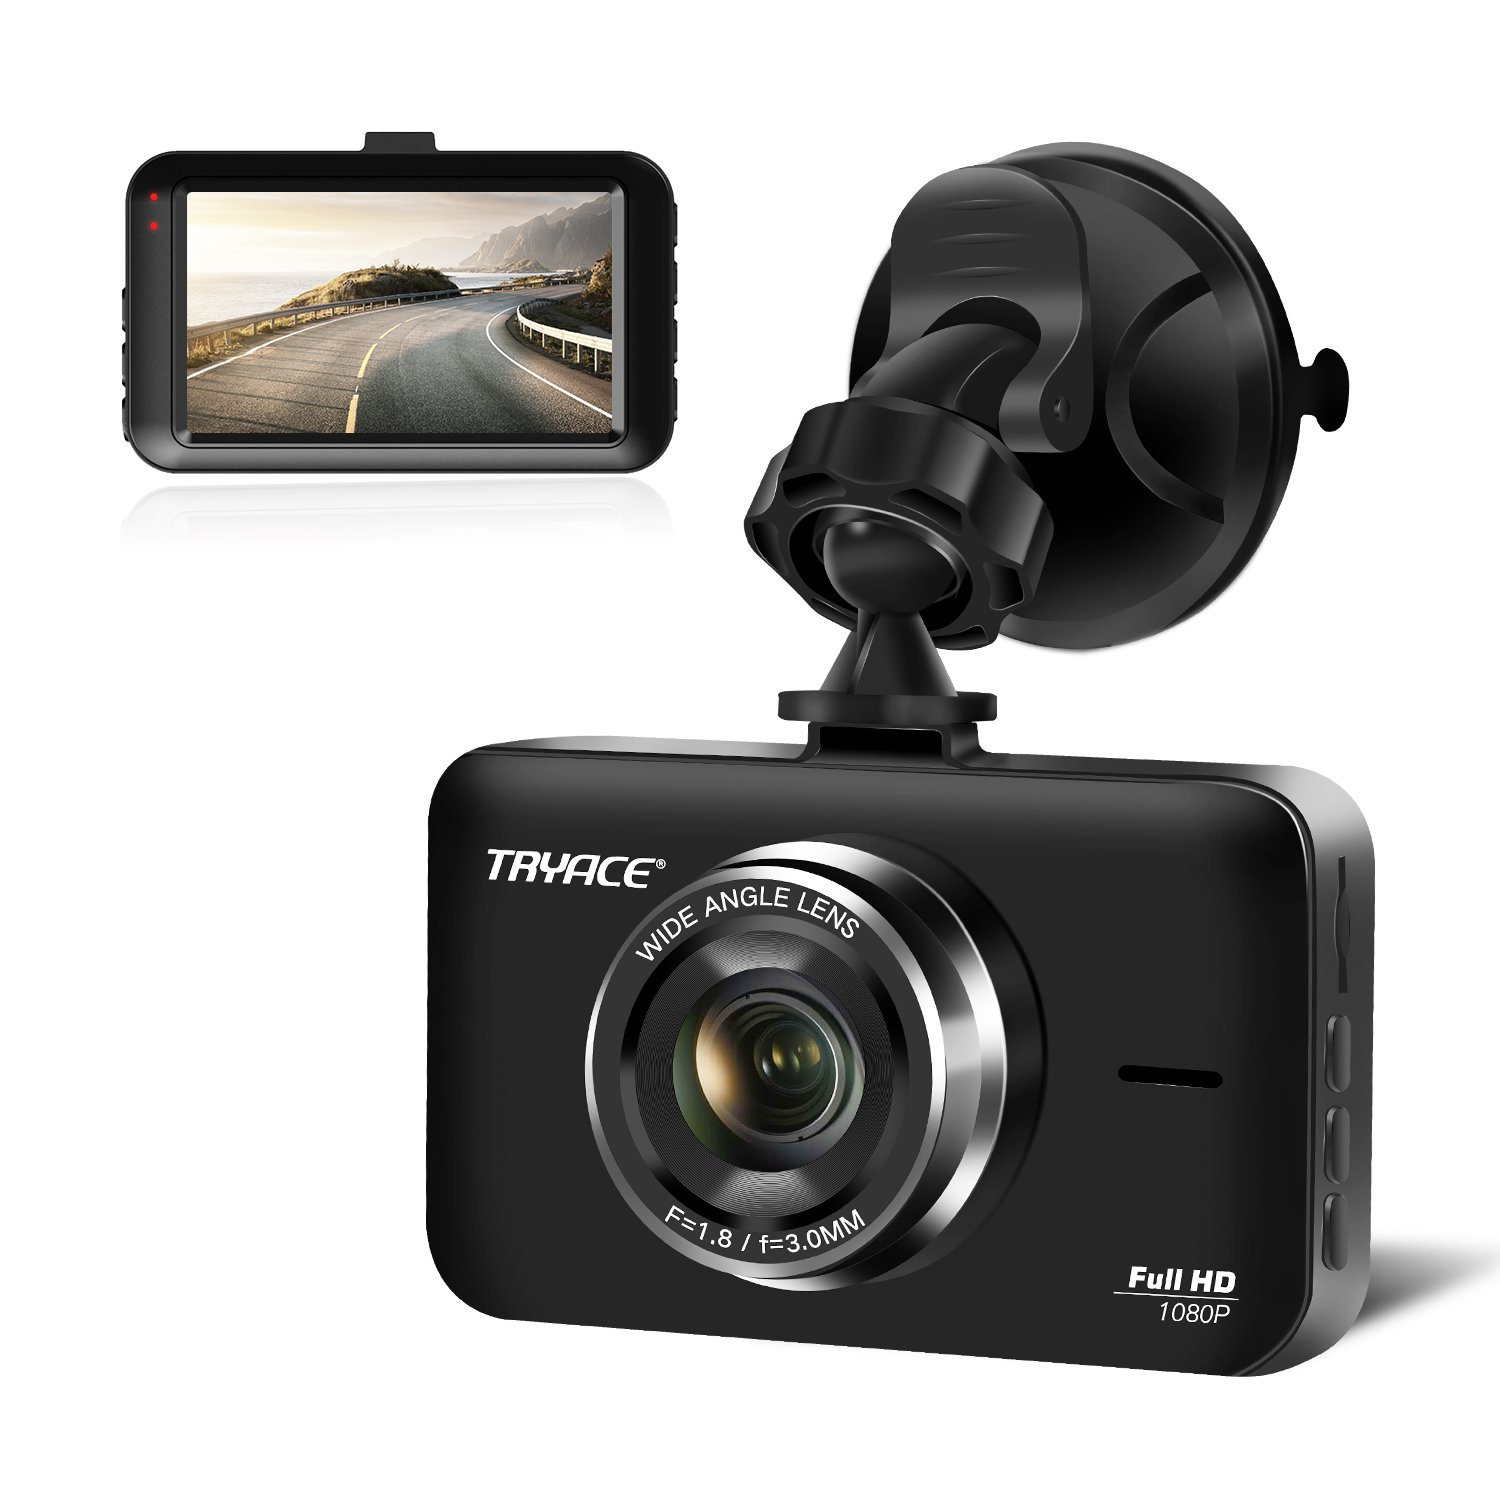 TryAce Dash Cam, 3'' LCD FHD 1080P Wide Angle Dashboard Camera Recorder with G-Sensor,Parking Monitor, WDR, Loop Recording(B7 Upgraded)